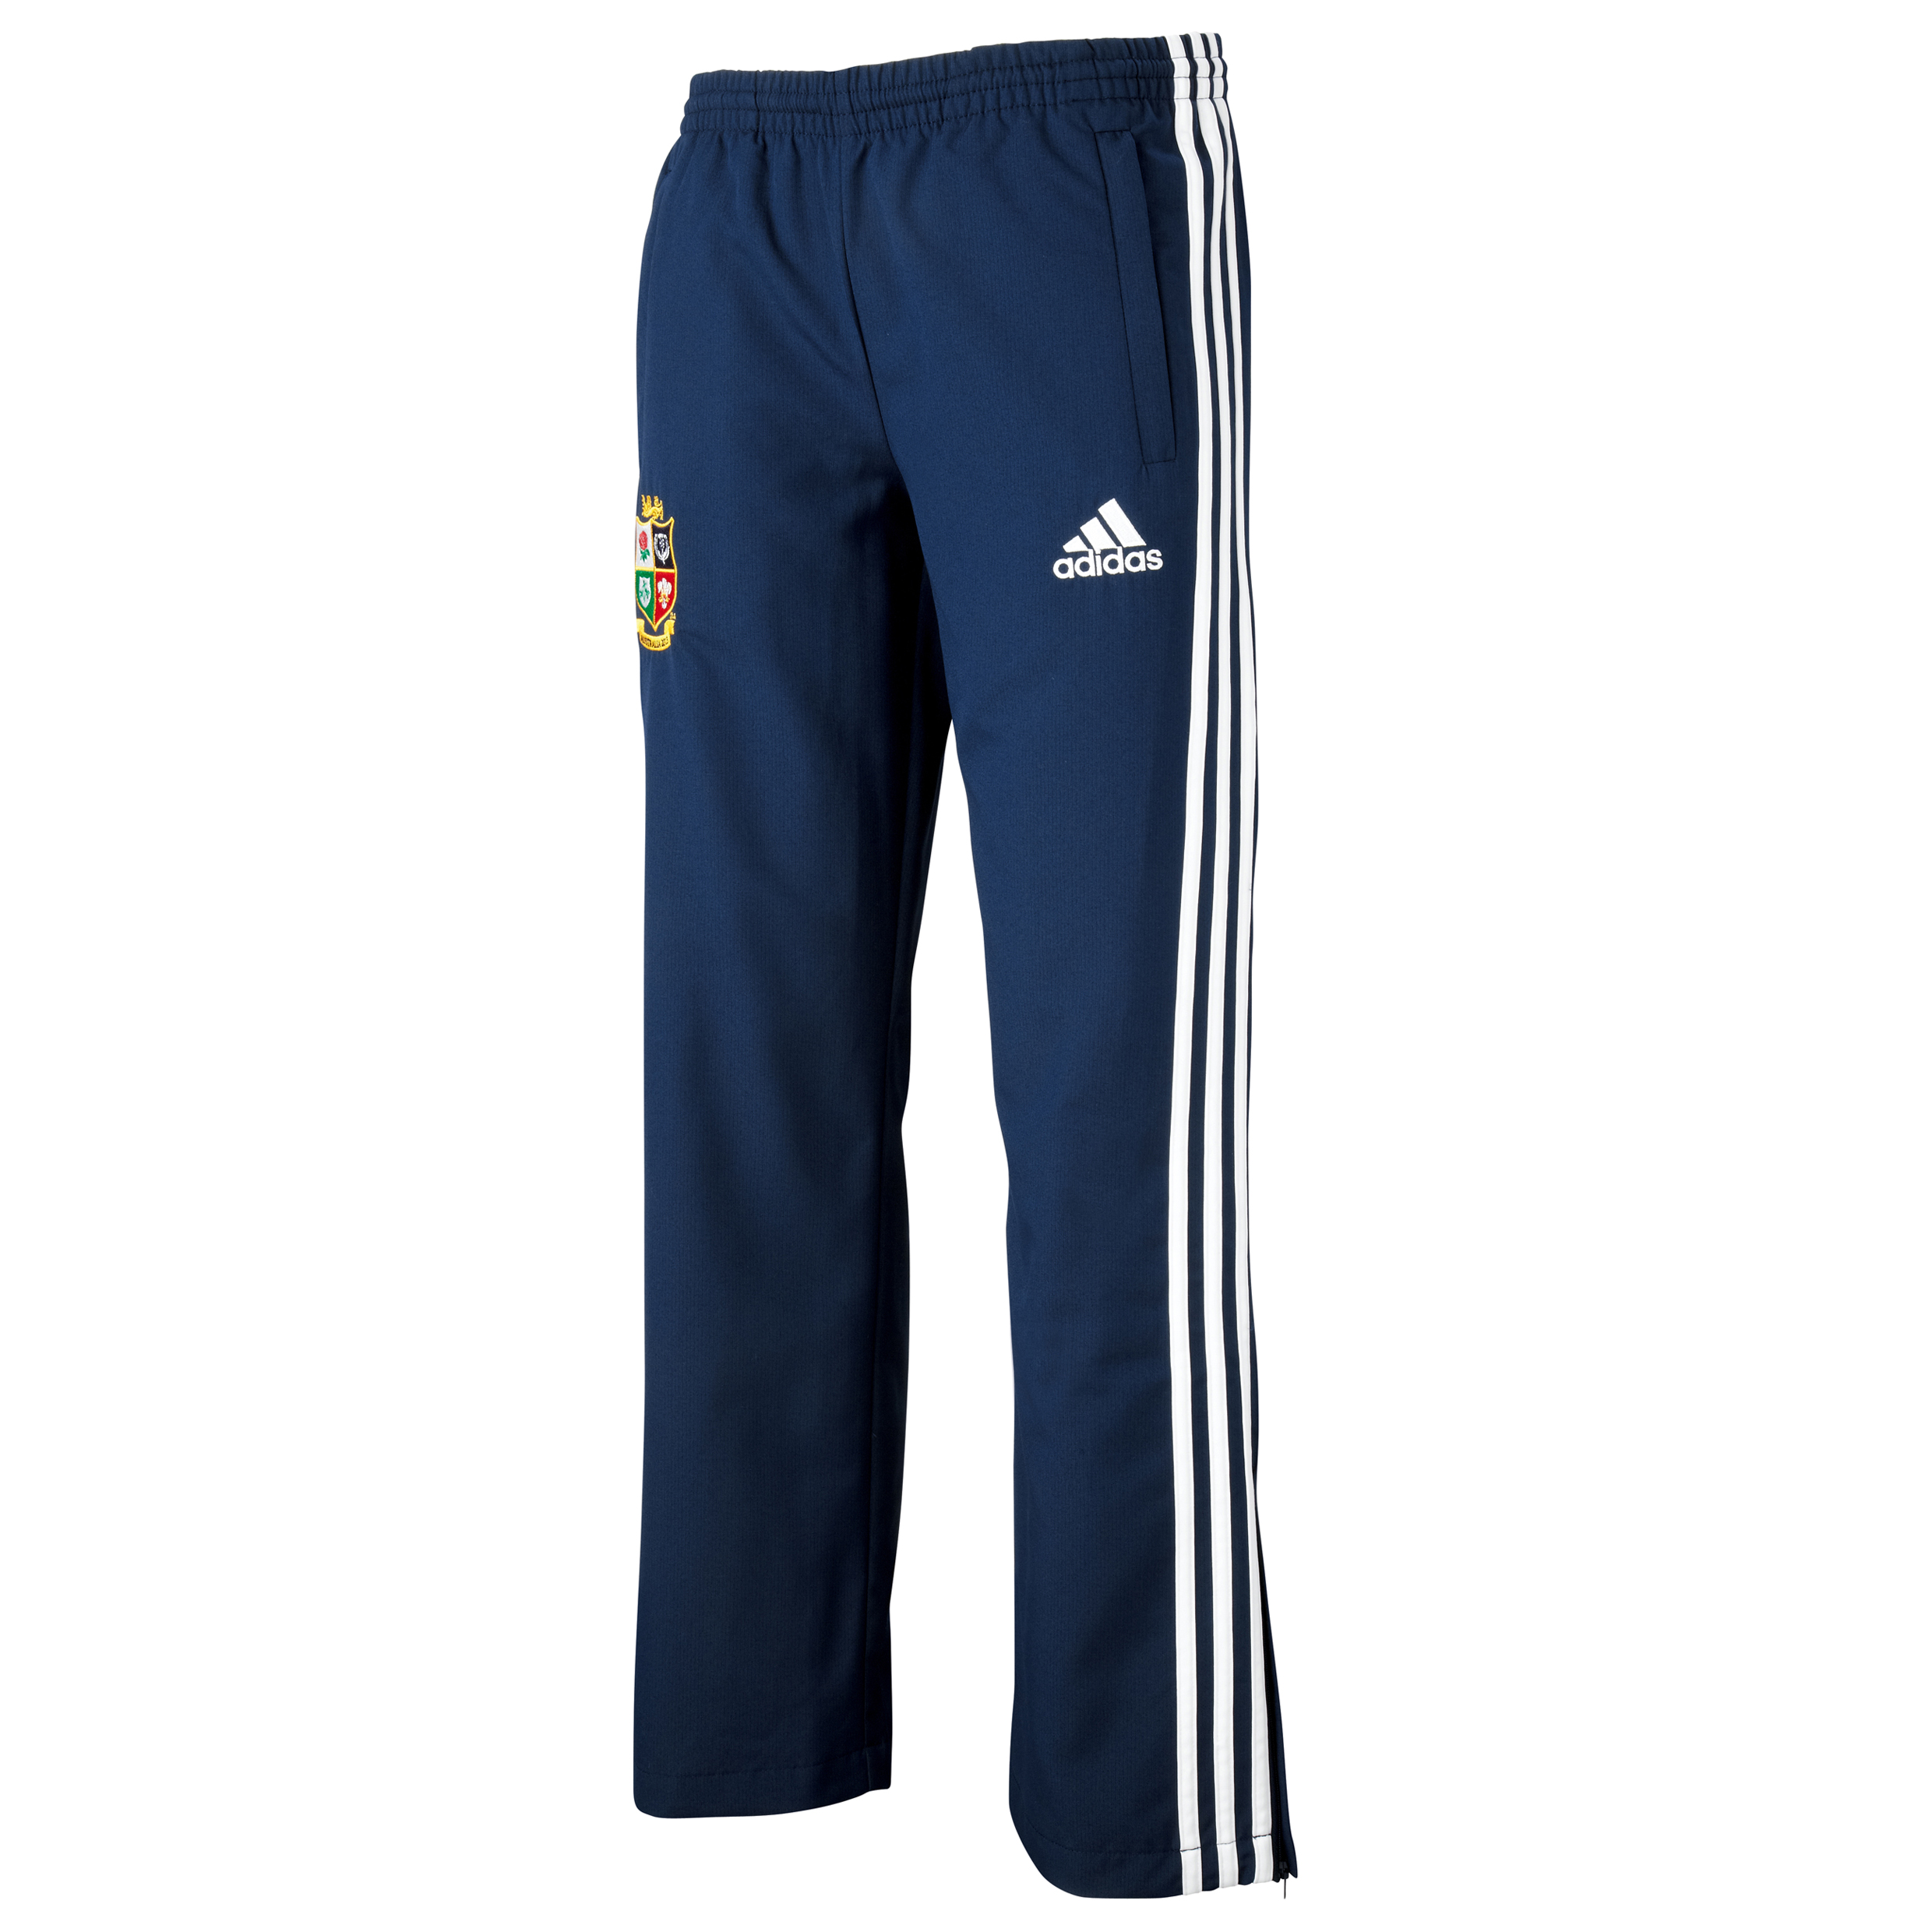 British & Irish Lions Presentation Pants - Collegiate Navy/White - Kids